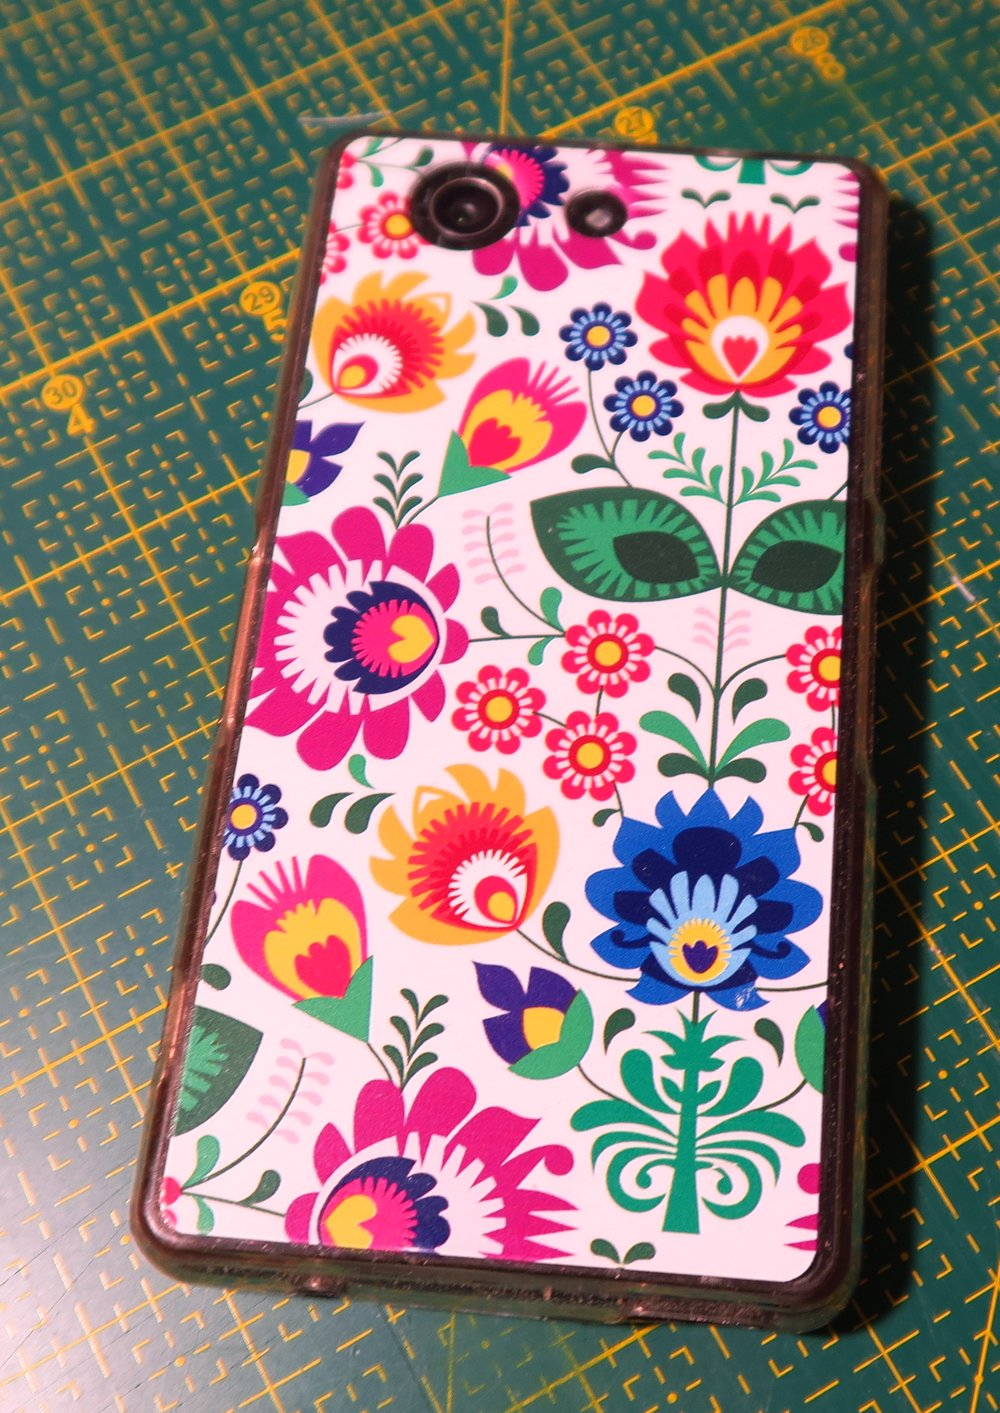 Anyway...here's mine. I was able to get a pretty Polish decorative protector for it - to help keep it from breaking when it tumbles to the ground! It's not a very big phone - I'd probably like a bit bigger one next time I upgrade - which I'm not looking to do right away.